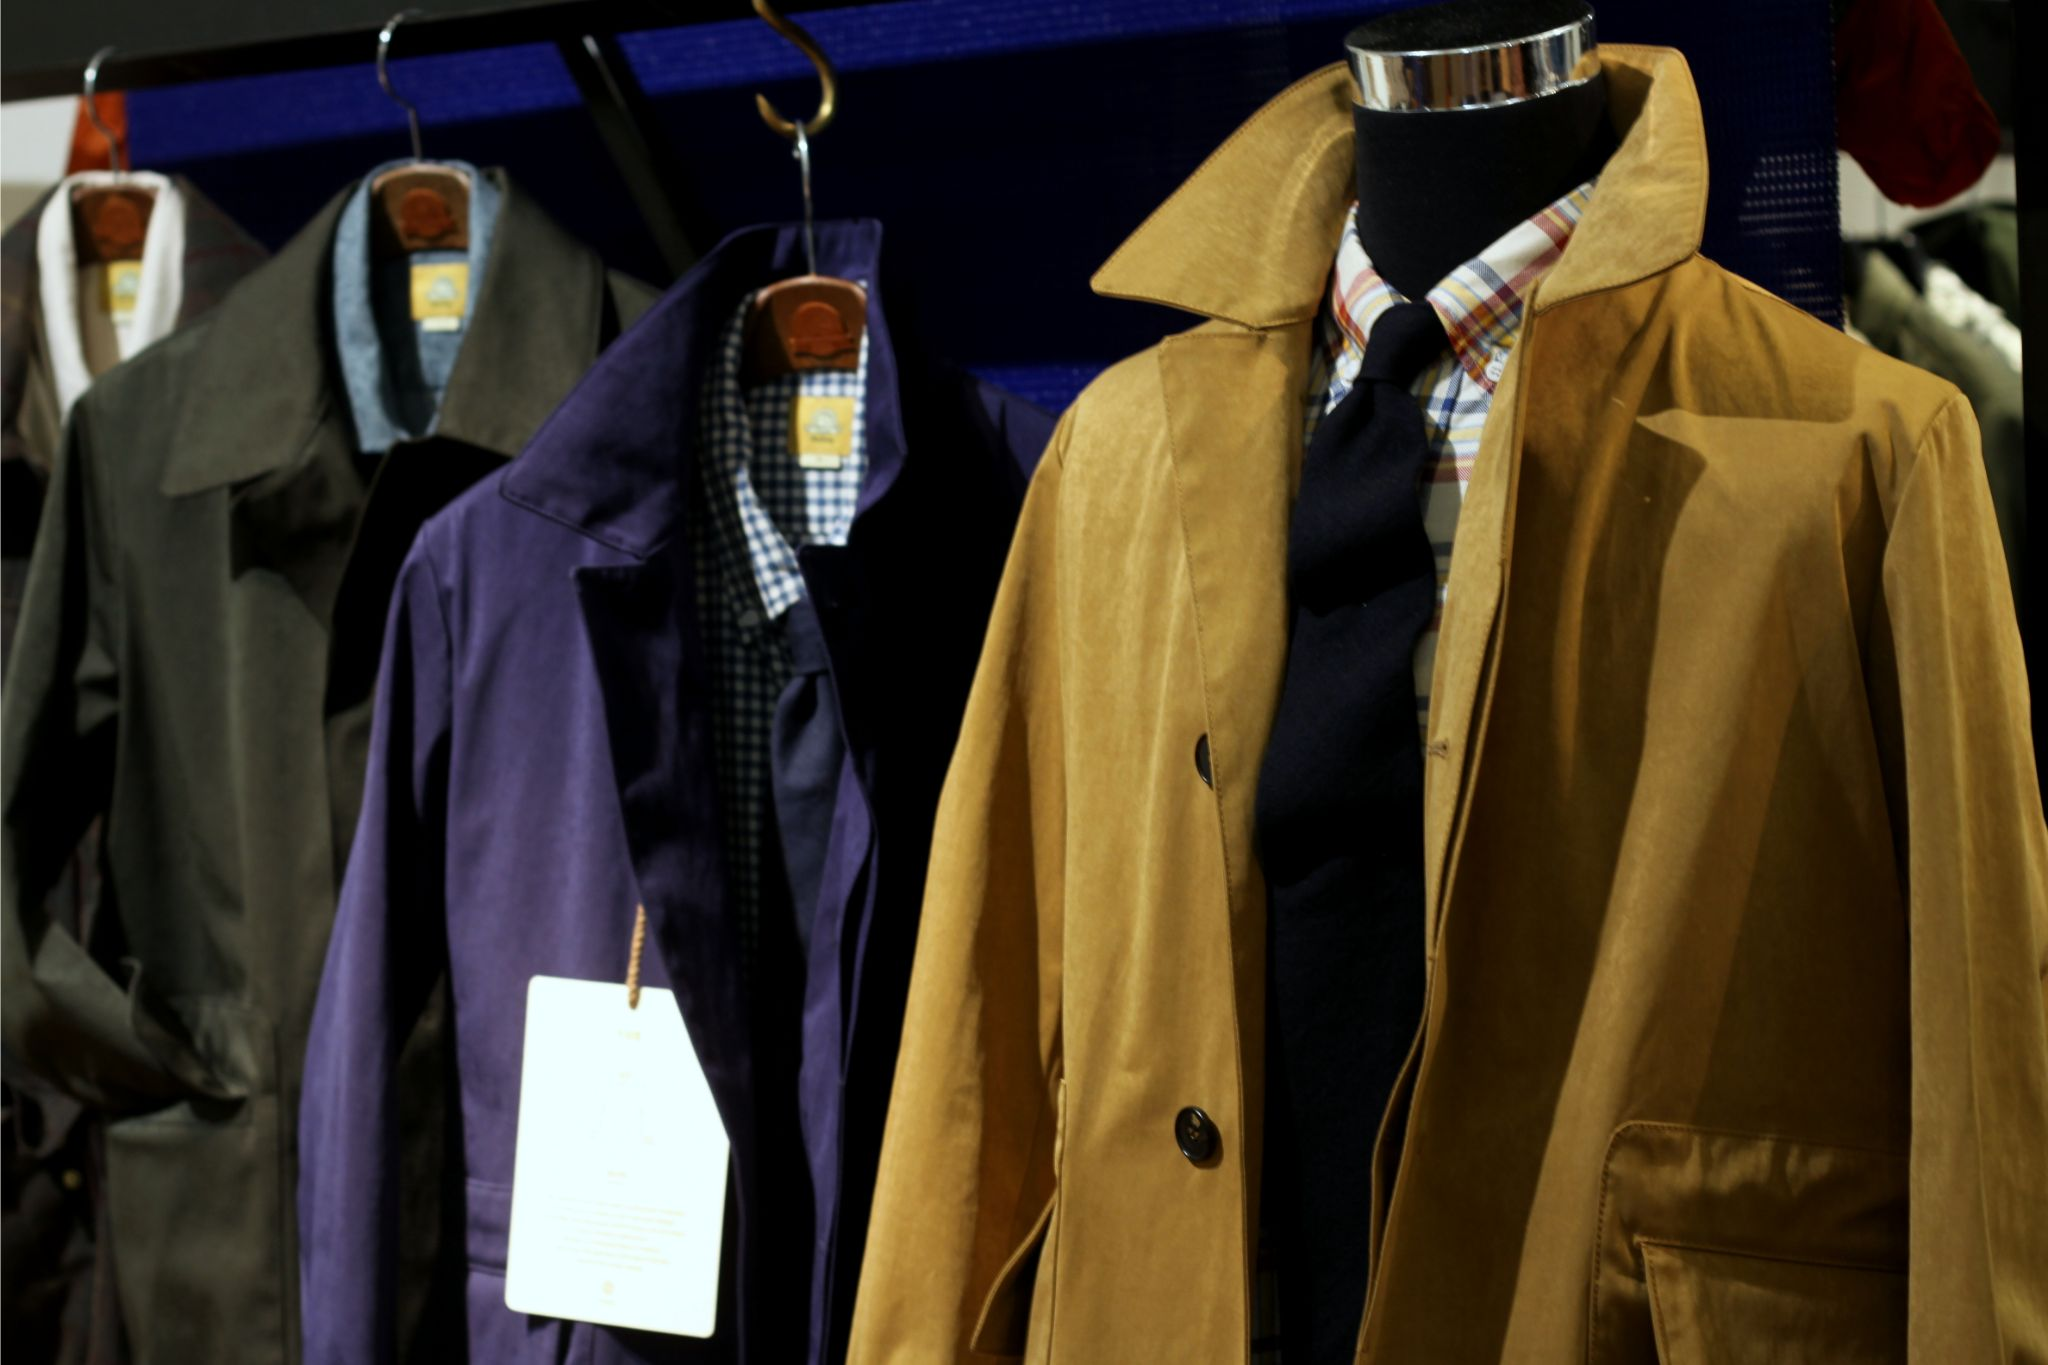 Bastong SS16 - outerwear presented at Pitti Uomo 88